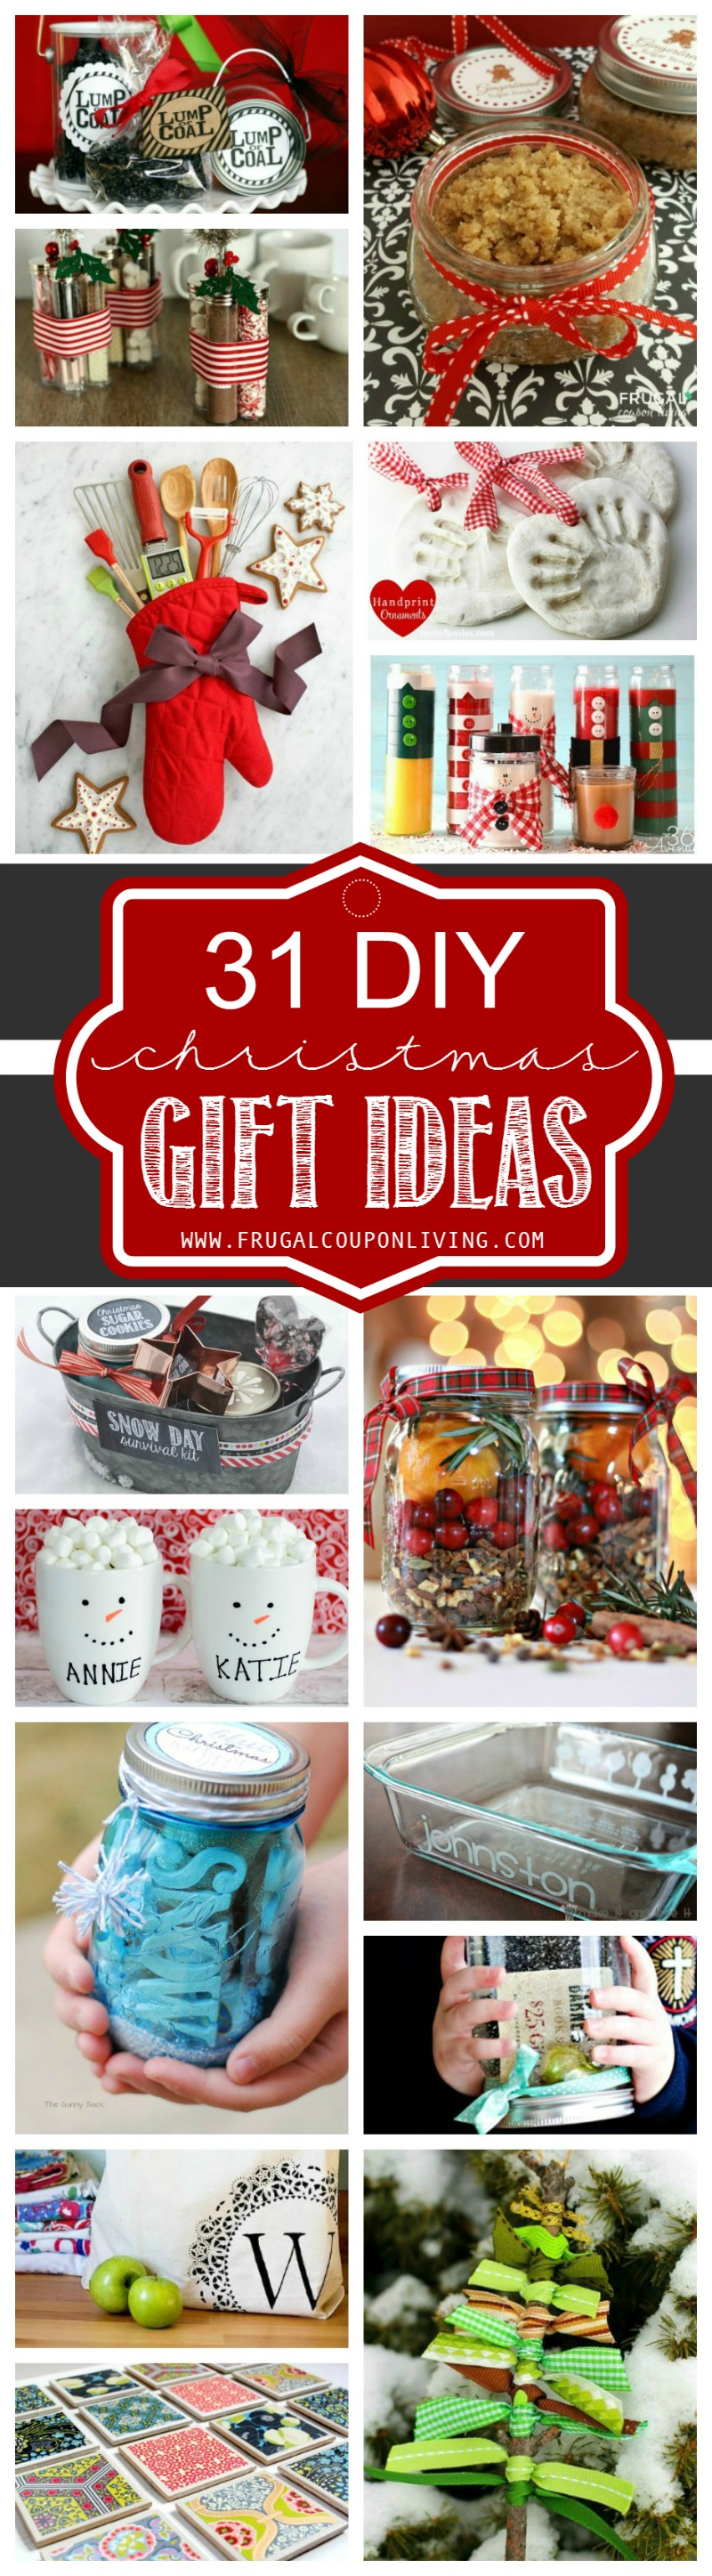 31 DIY Christmas Gift Ideas on Frugal Coupon Living